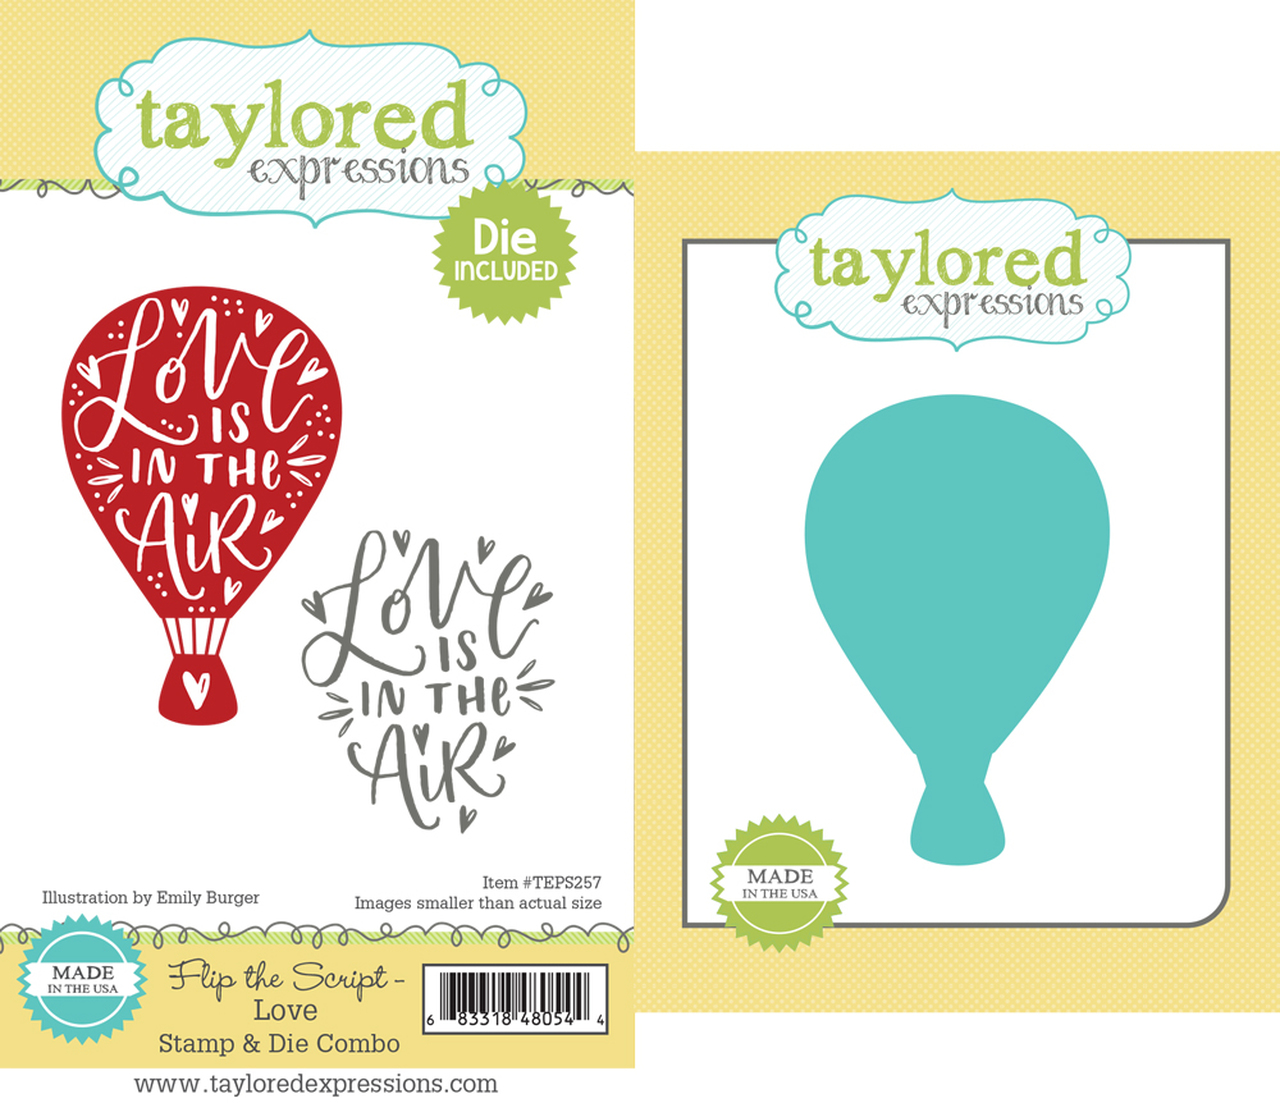 Taylored Expression - Flip the Script - Love Stamp & Die Combo